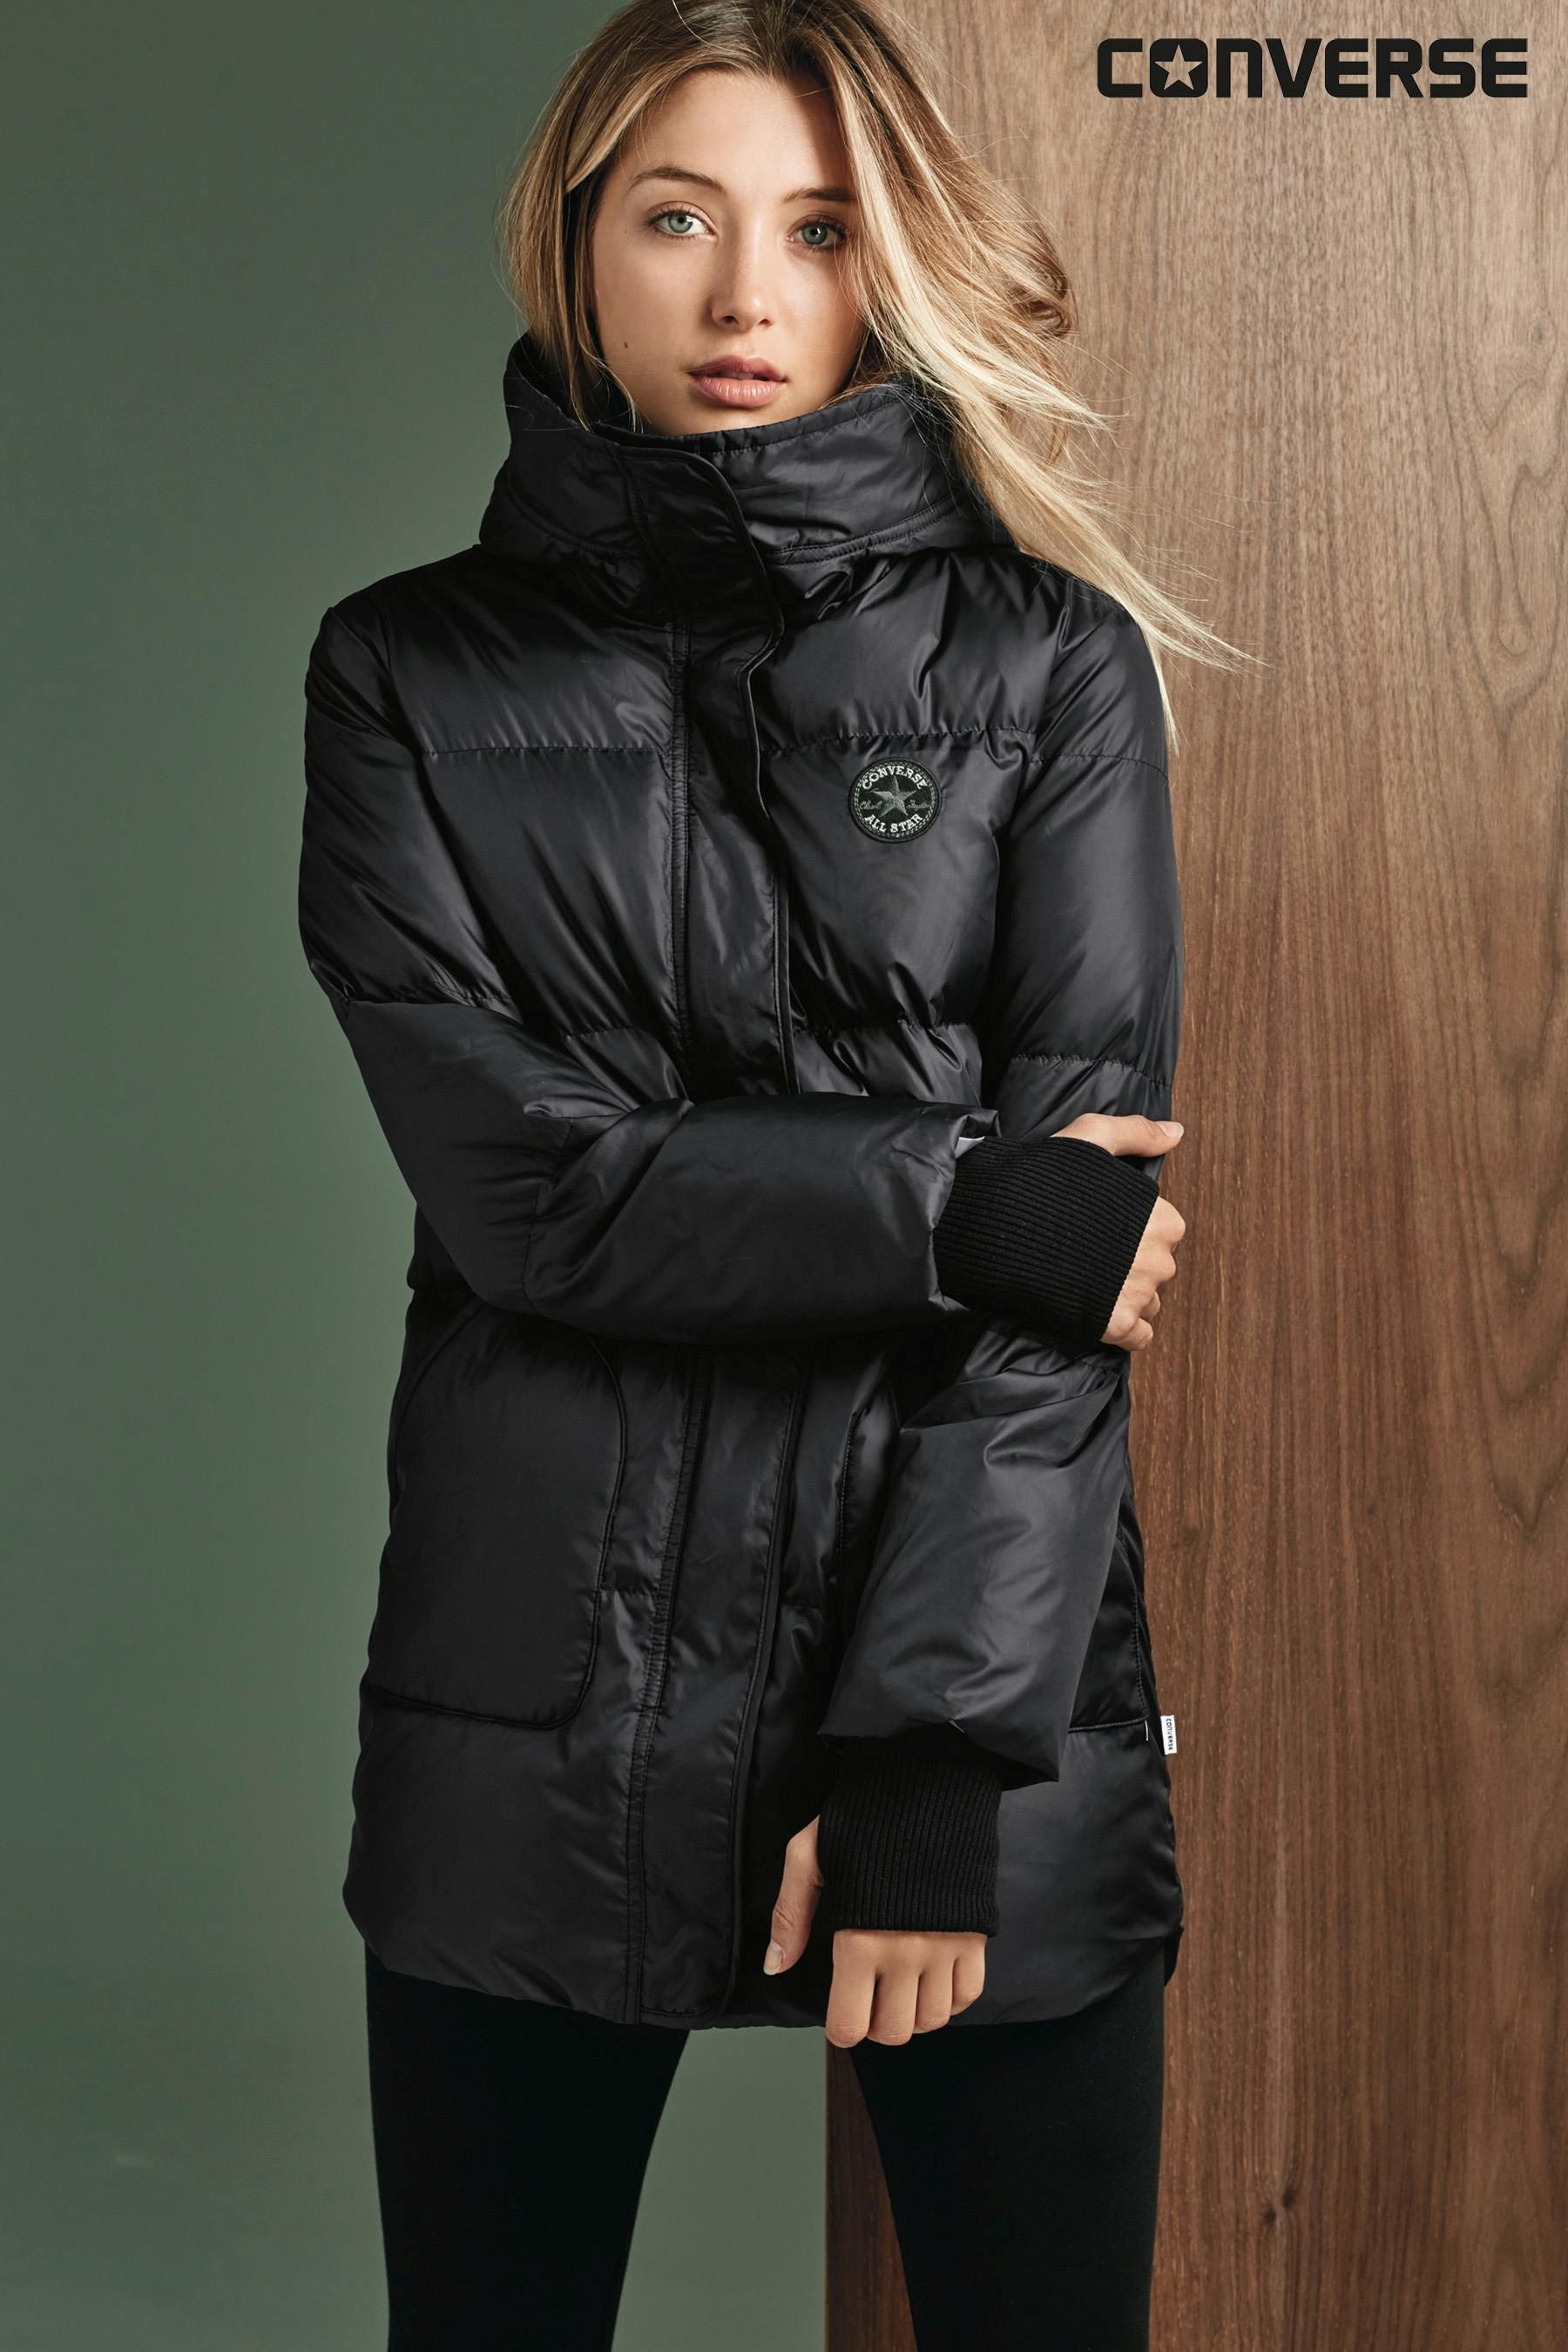 e352189ac Buy Converse Black Puffer Jacket from the Next UK online shop ...